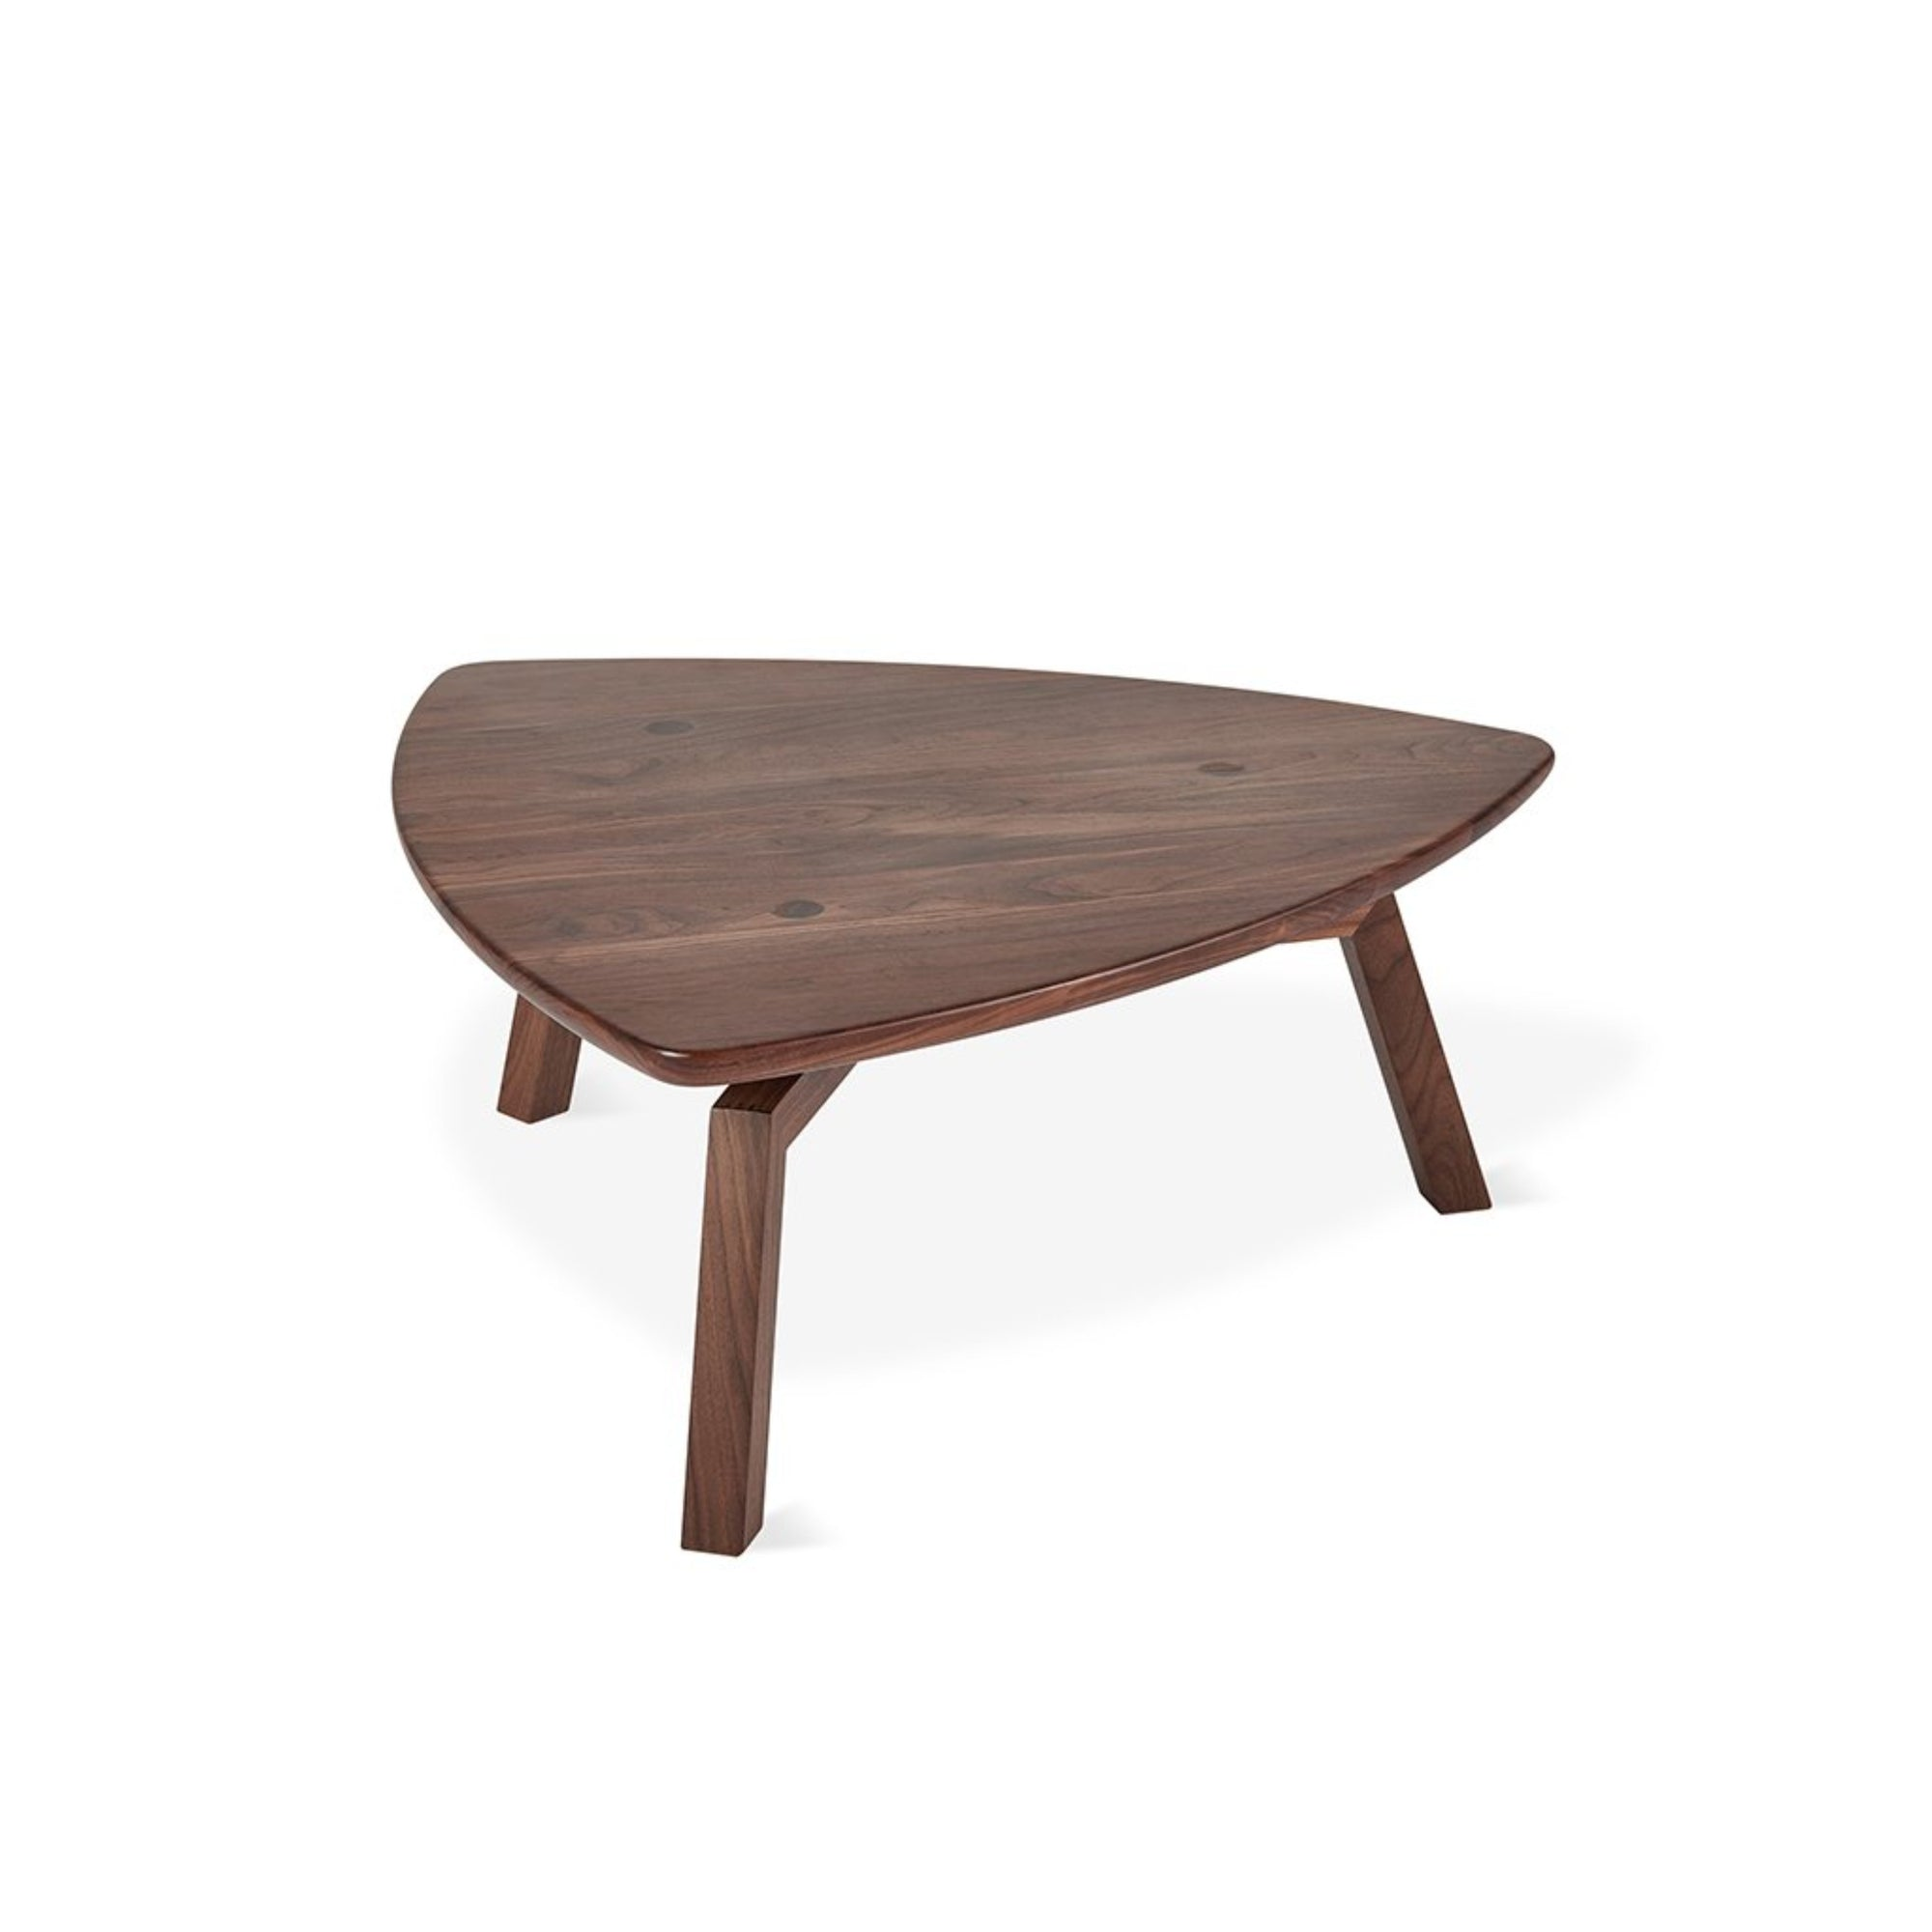 Gus* Modern Solana Triangular Coffee Table